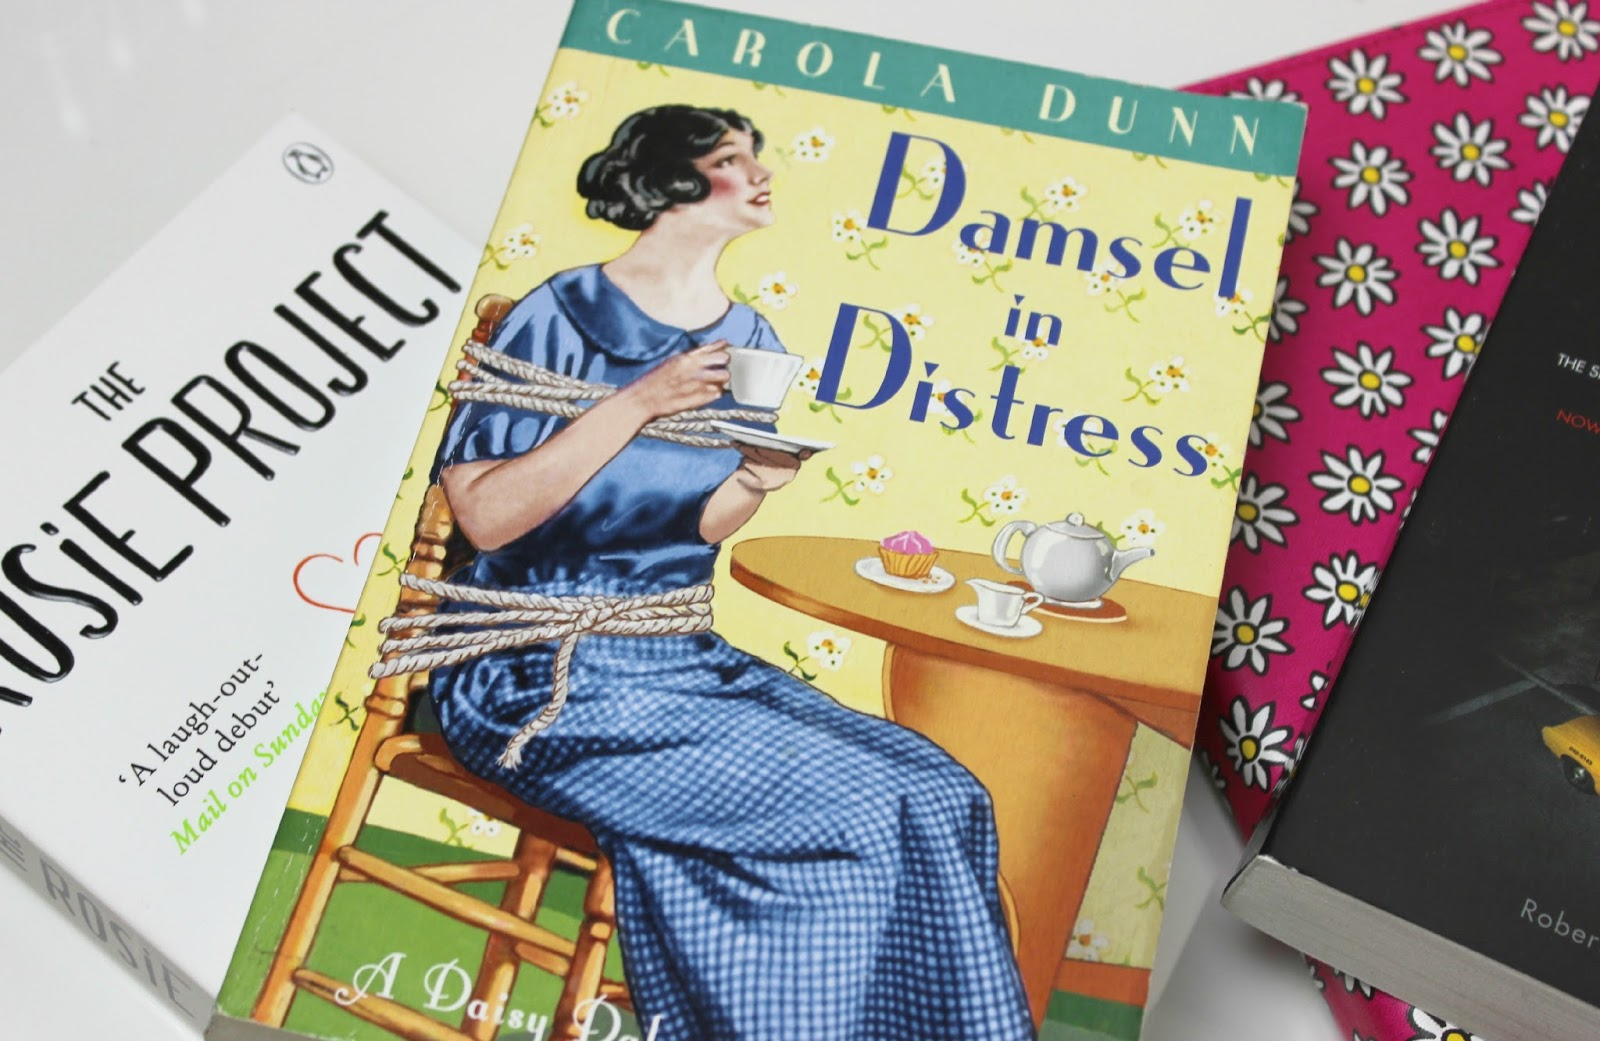 A picture of Damsel in Distress by Carola Dunn